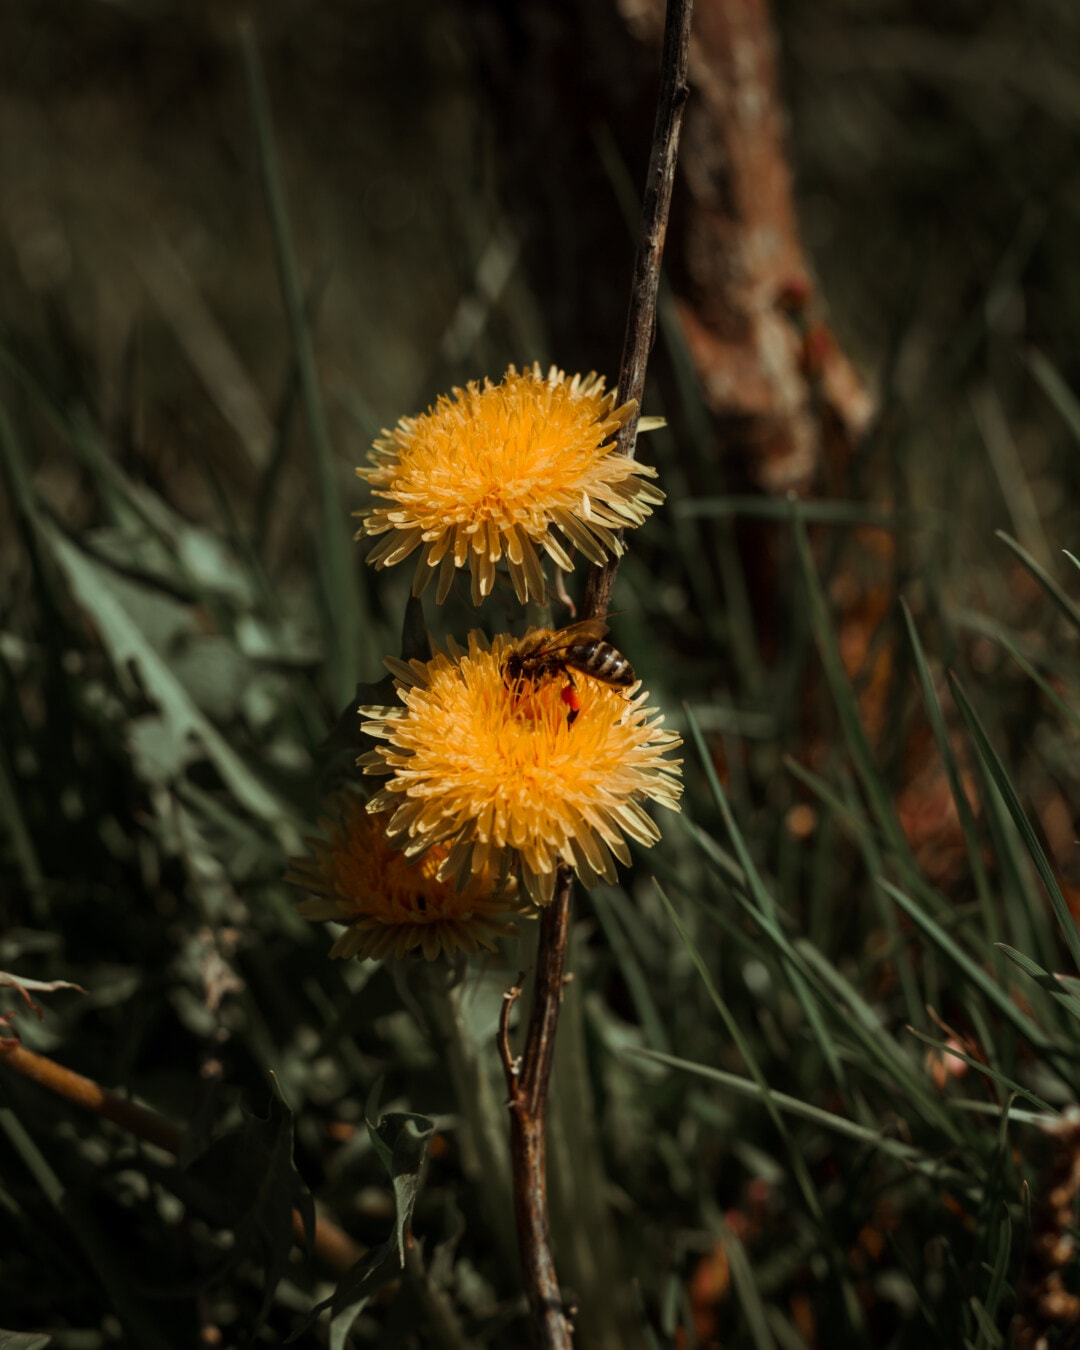 dandelion, honeybee, close-up, insect, grass plants, herb, plant, nature, flower, flora